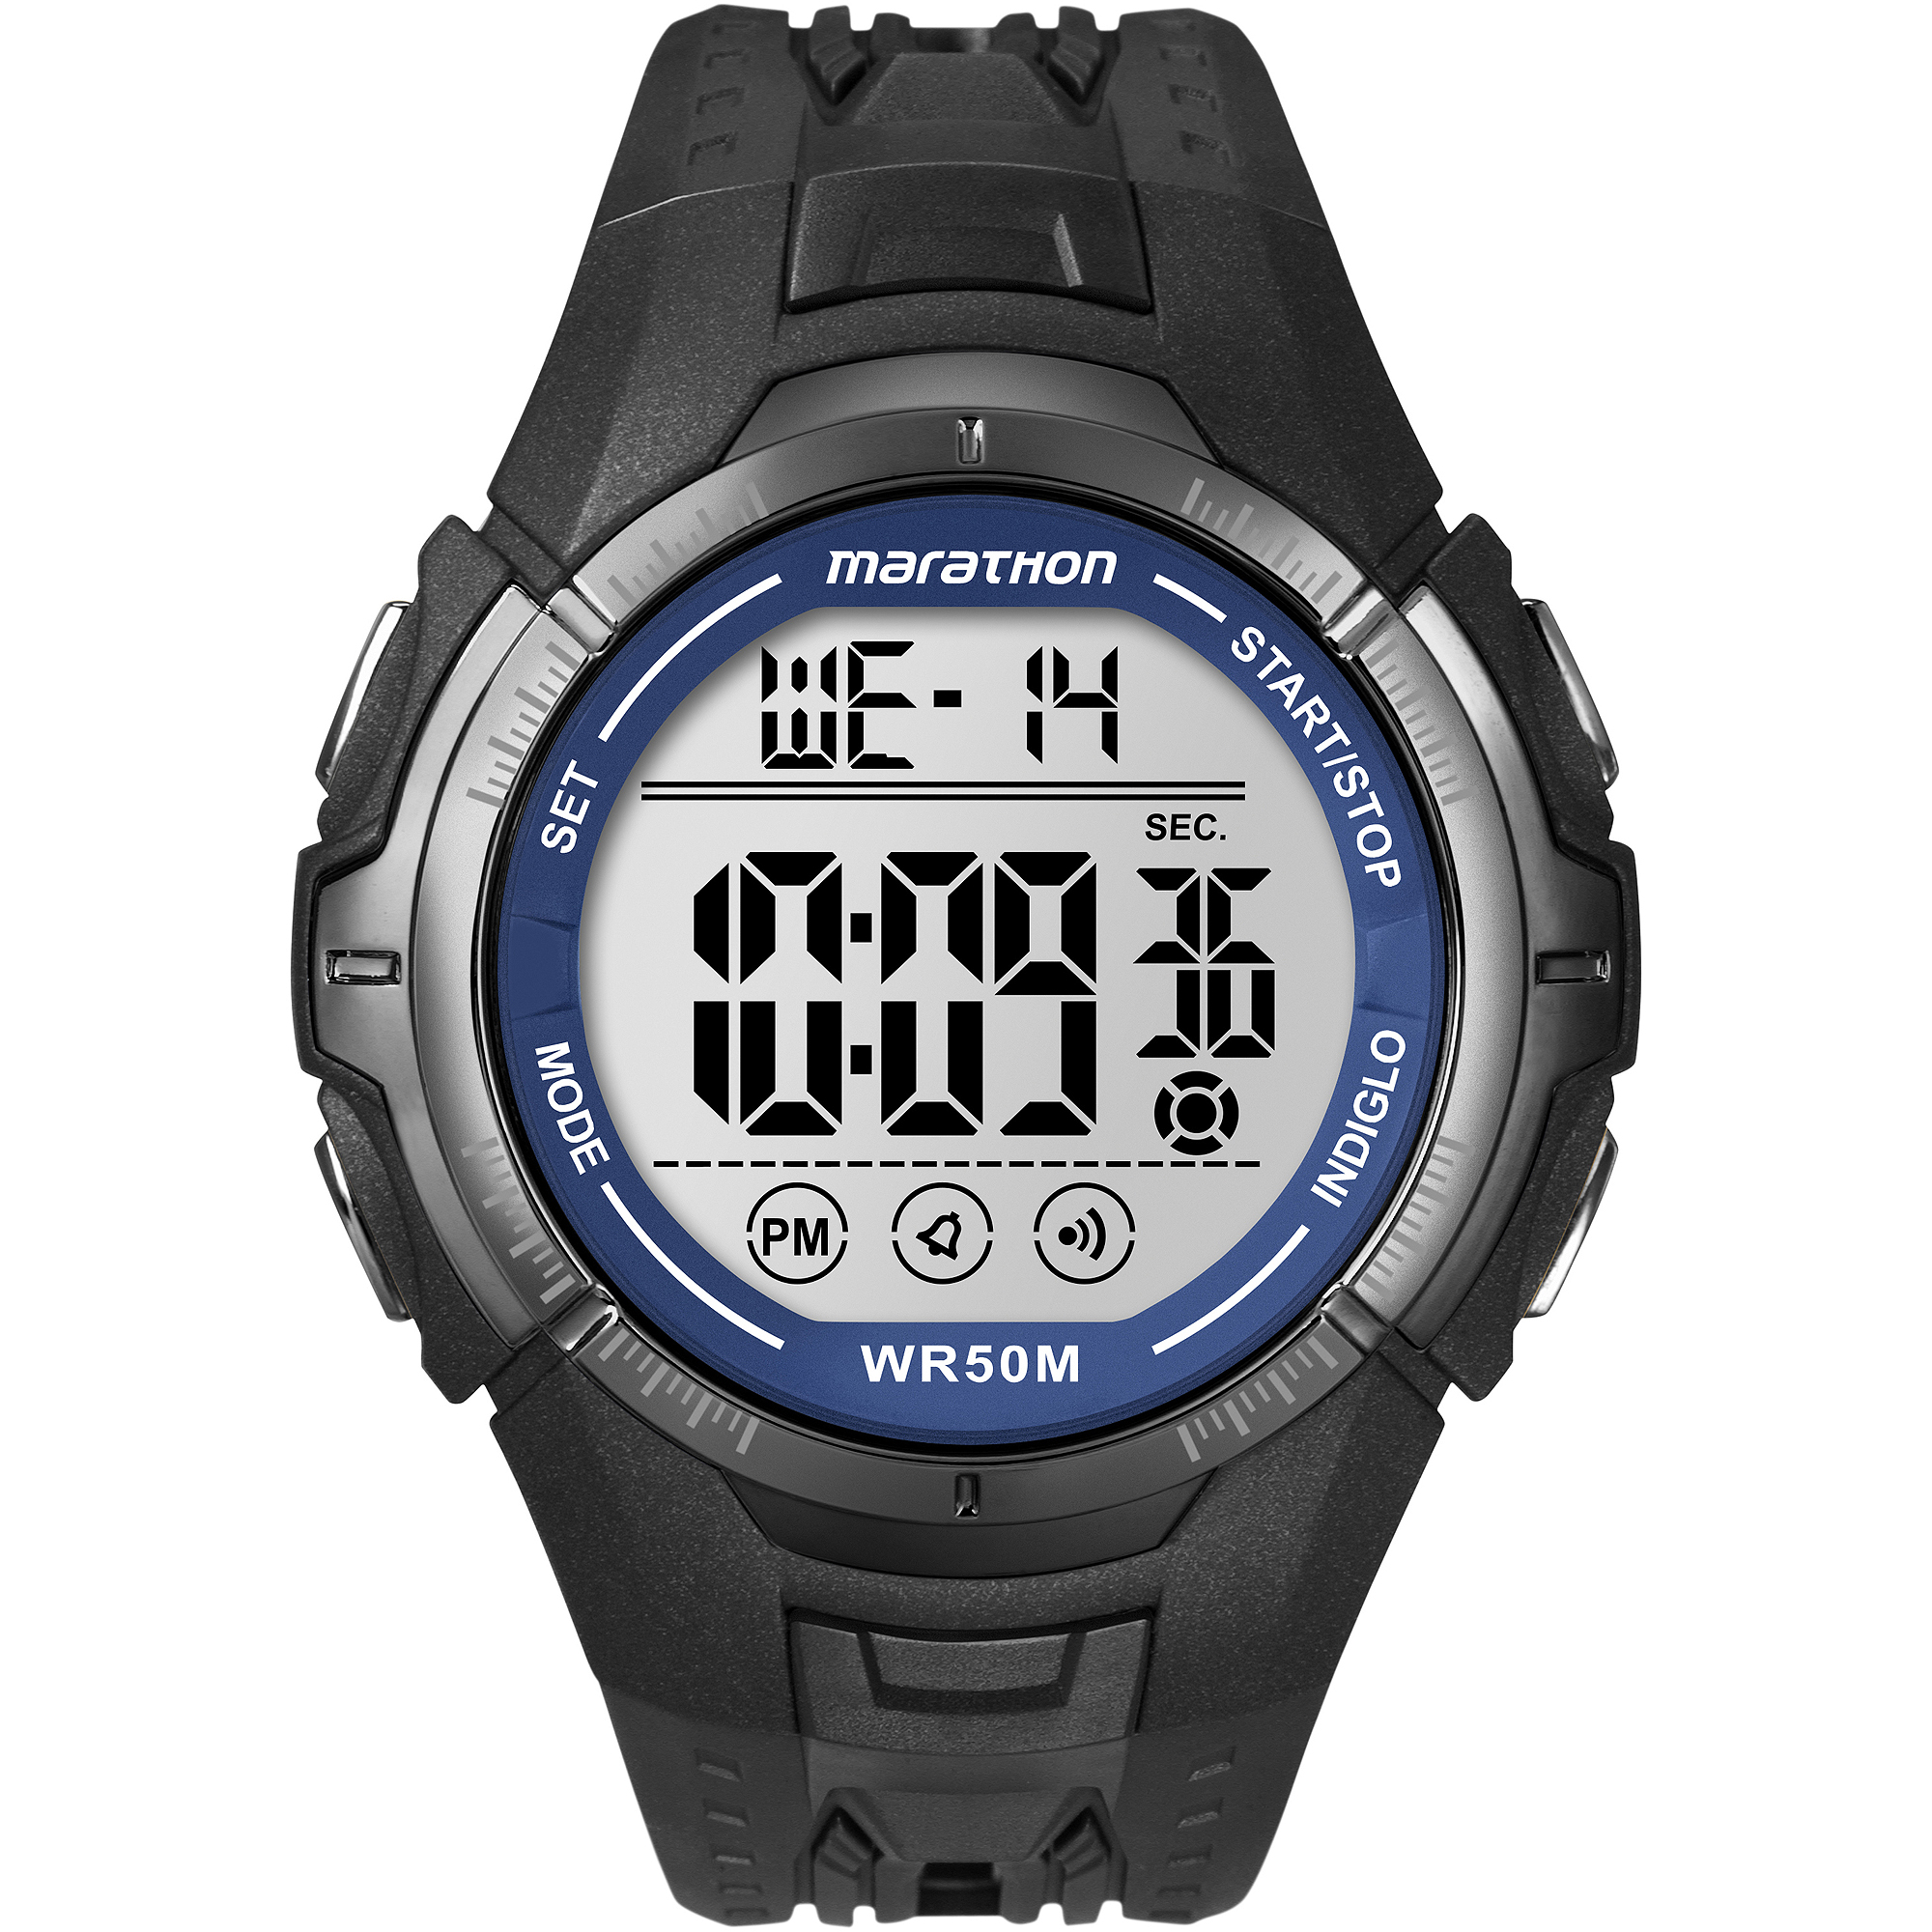 Marathon by Timex Men's Digital Full-Size Watch, Black Resin Strap